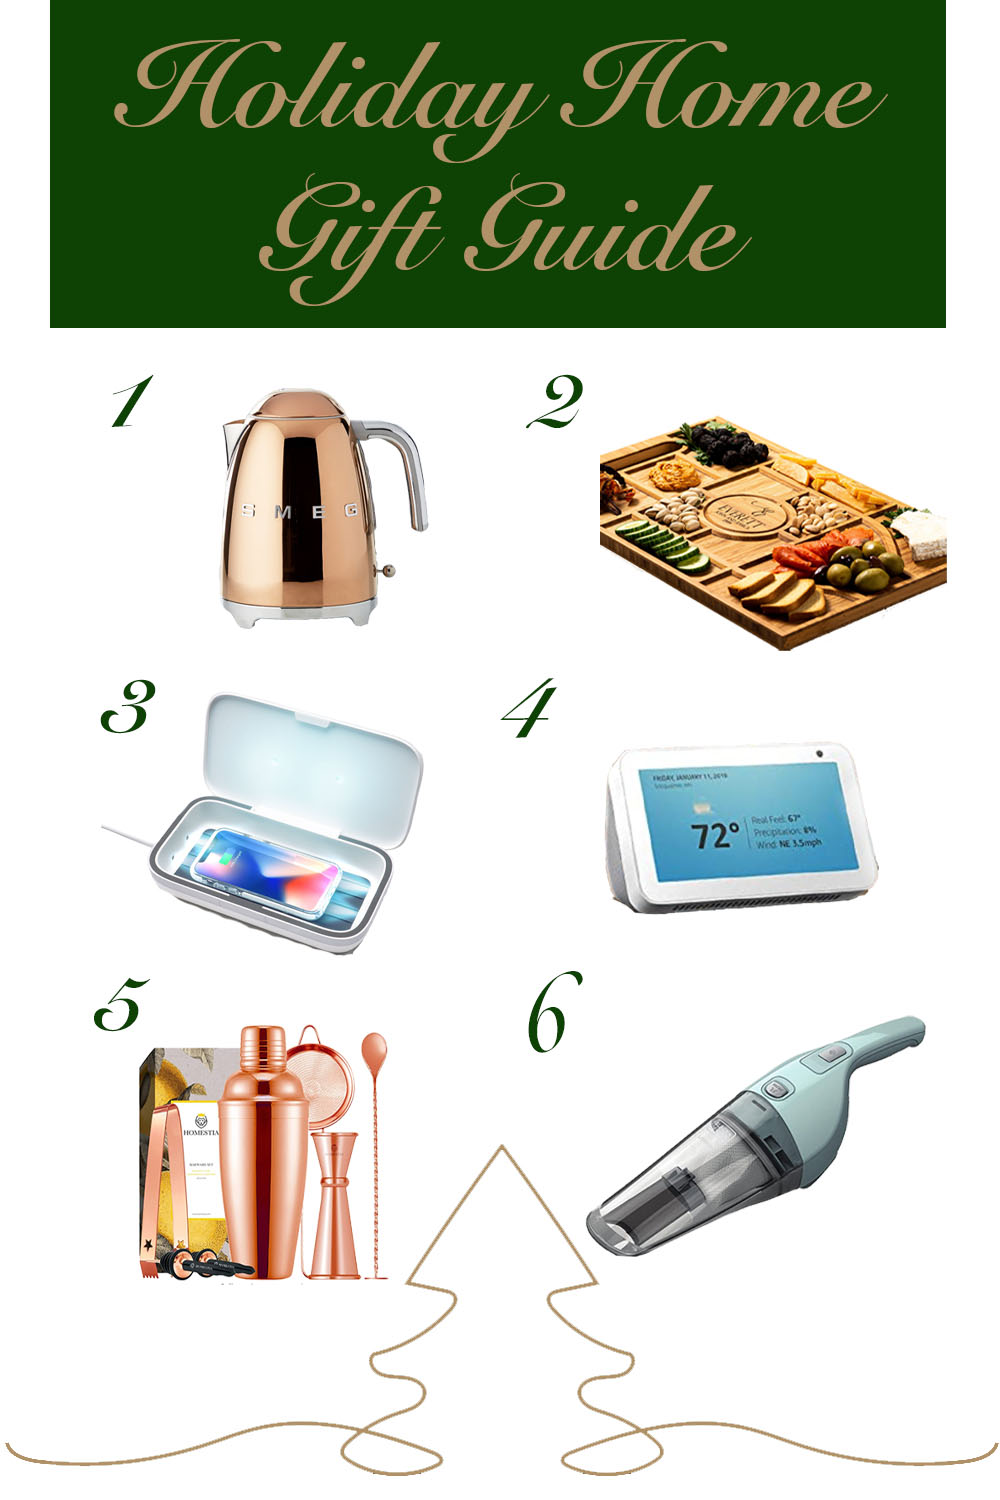 Best Gifts for the Home Holiday Gift Guide